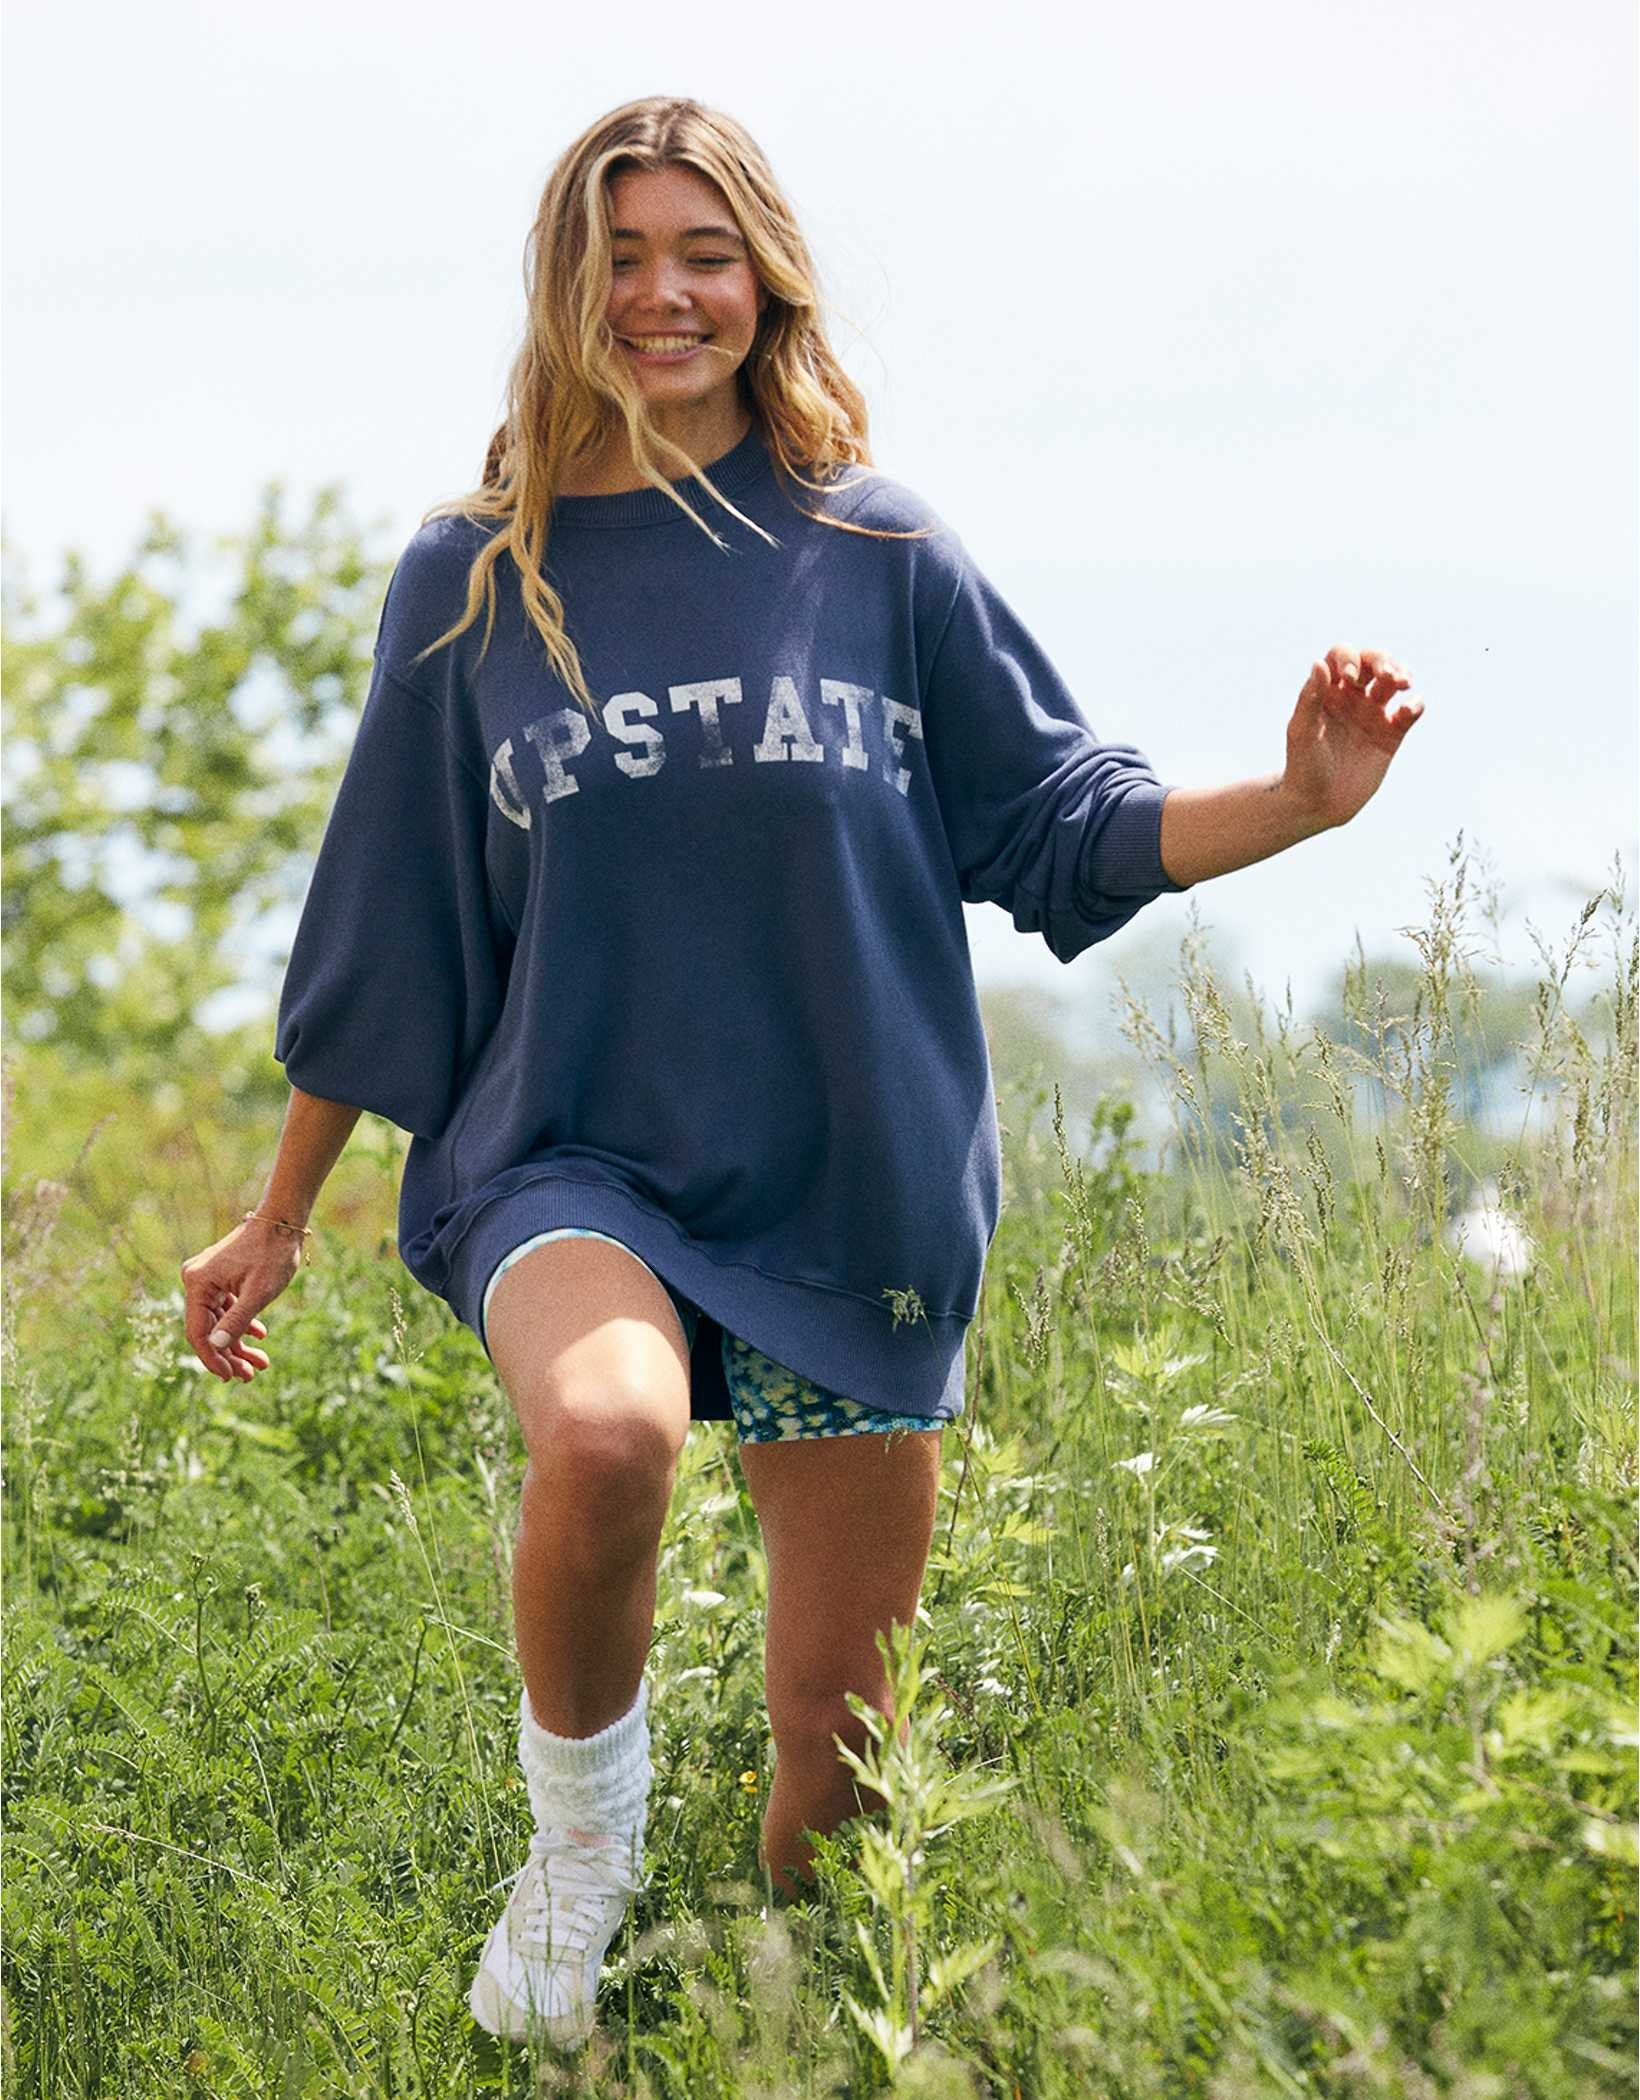 """a model walking in grass in an oversized blue sweatshirt that says """"upstate"""" on it"""